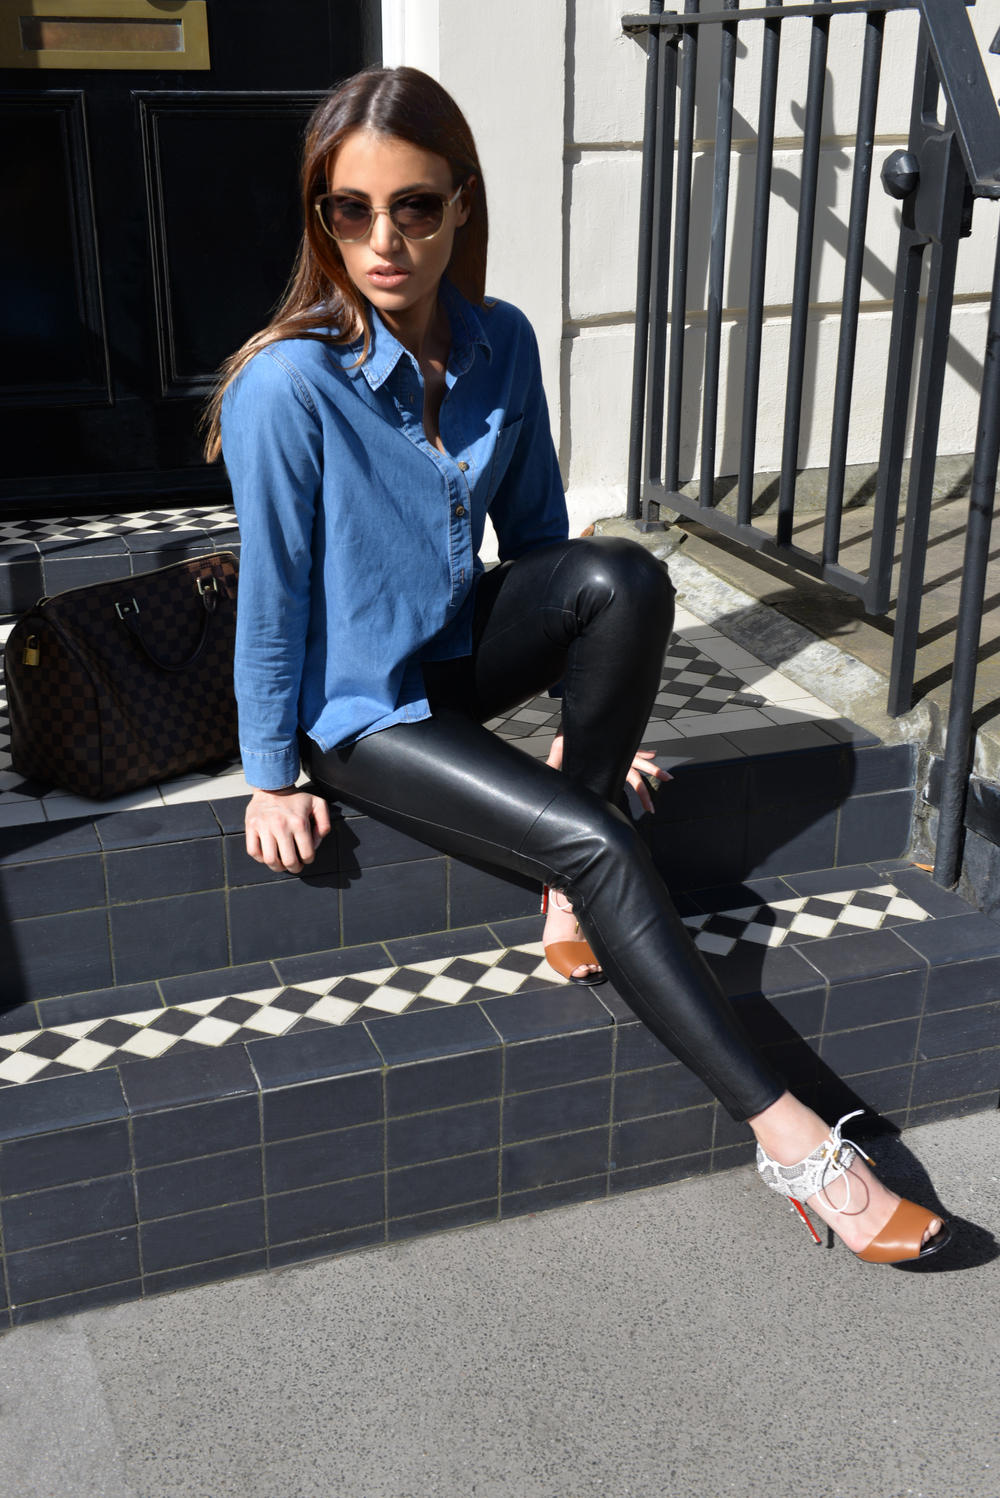 photo (4) The Vanillawoods Maureen Sophie Kragt, leather pants, denim shirt, skinny jeans, Christian Louboutin Mayerling heels. Best Fashion Blog, personal style blog London